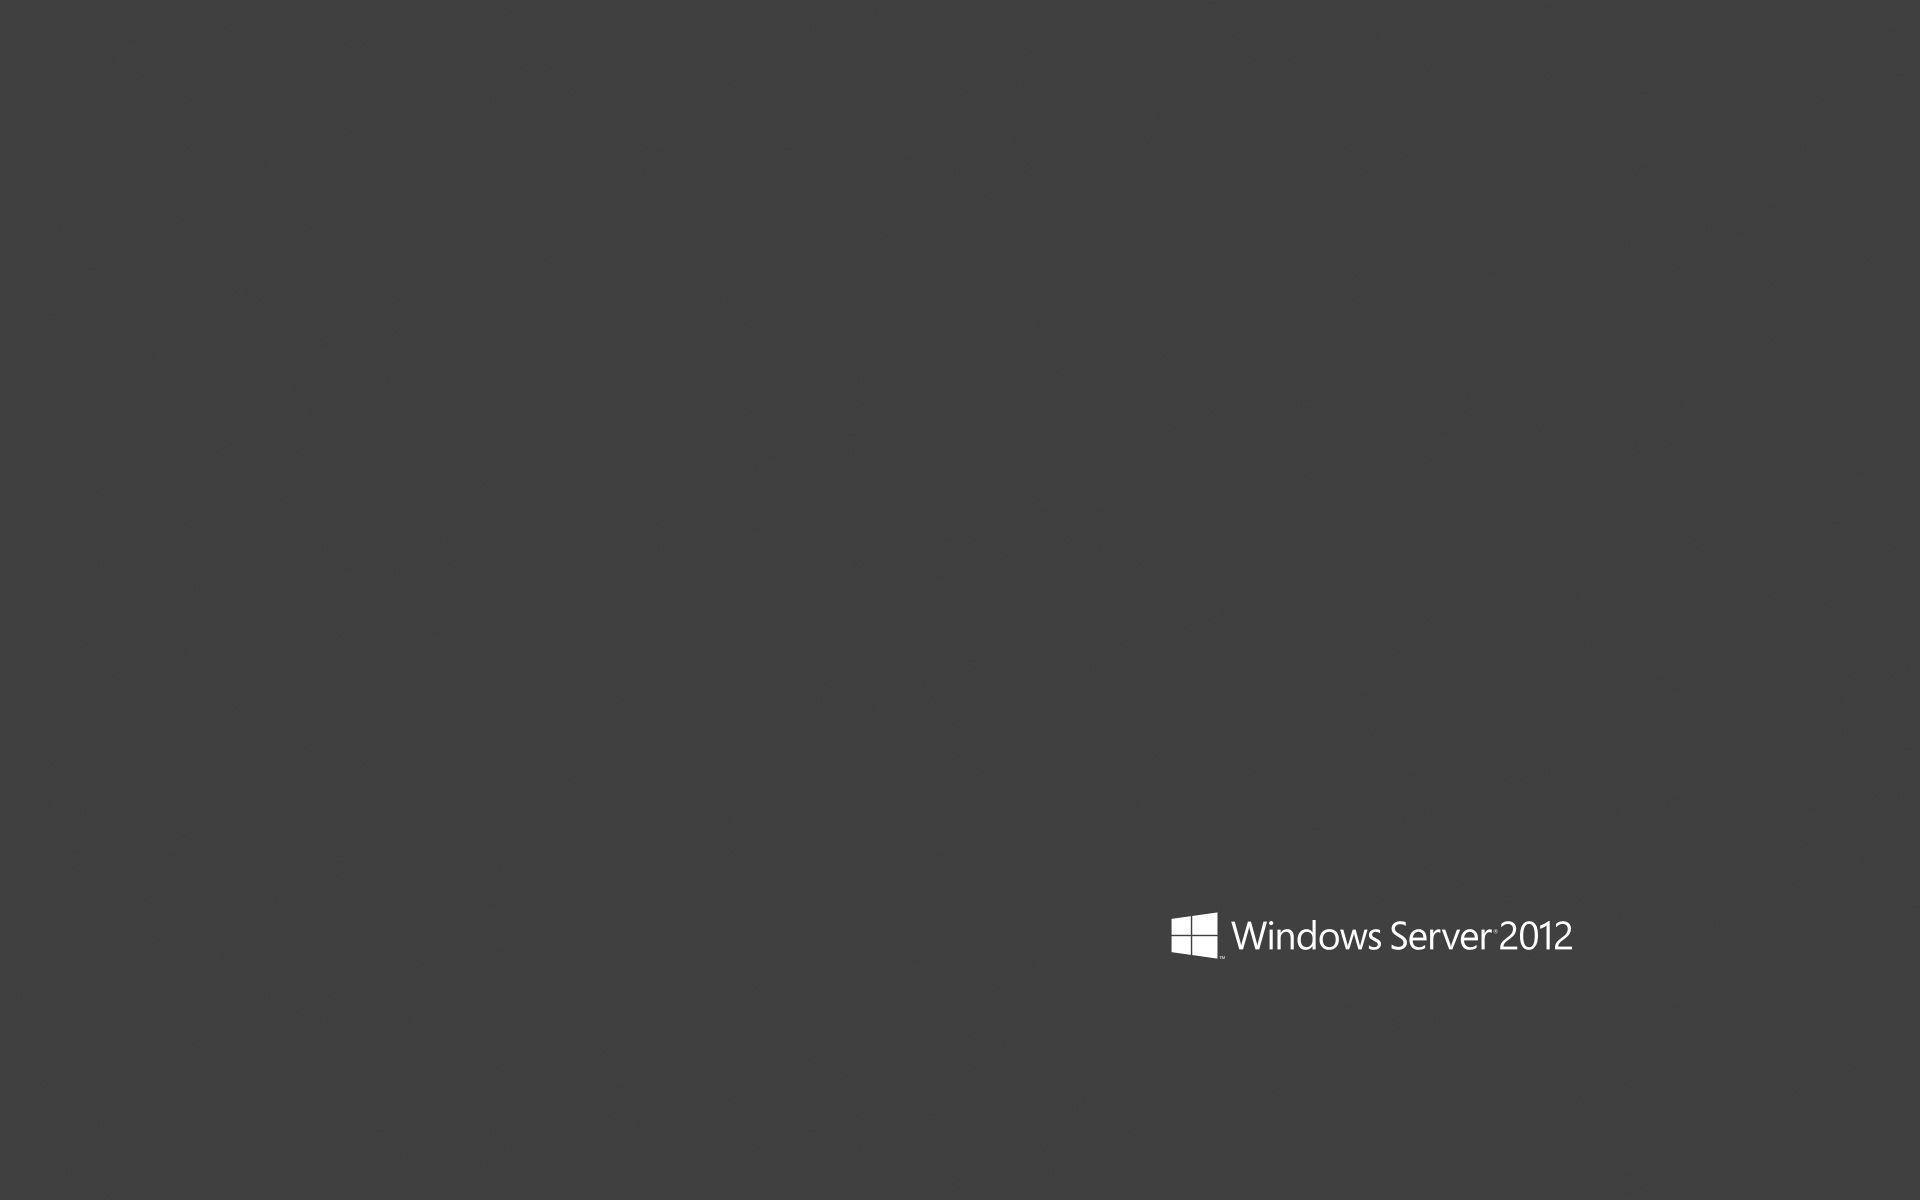 default windows wallpaper black - photo #33